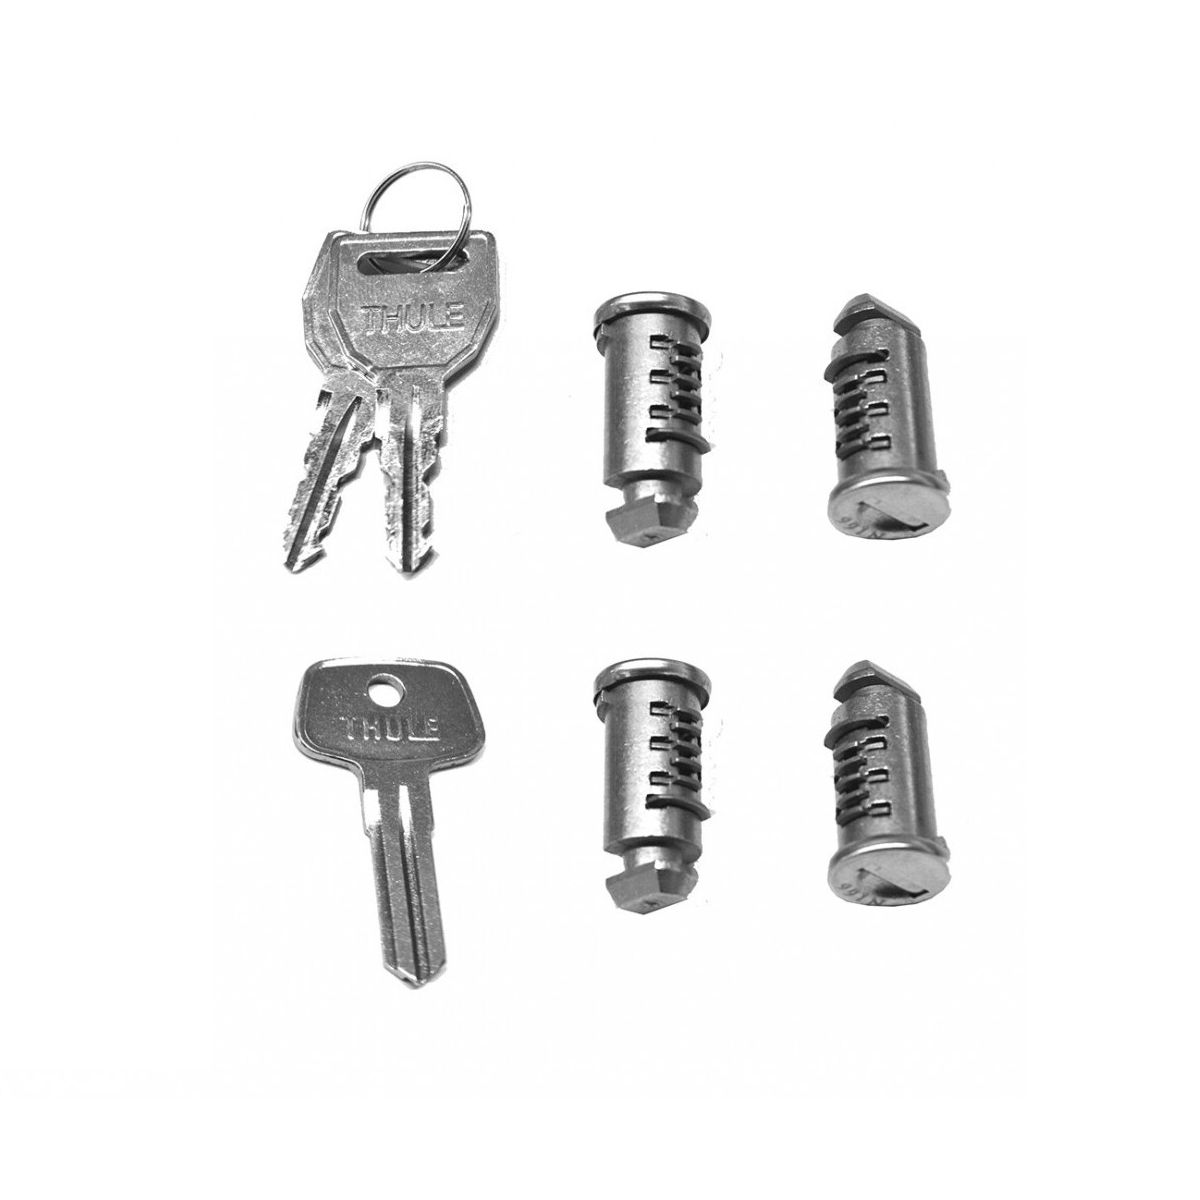 One-Key System 4 lock cylinder